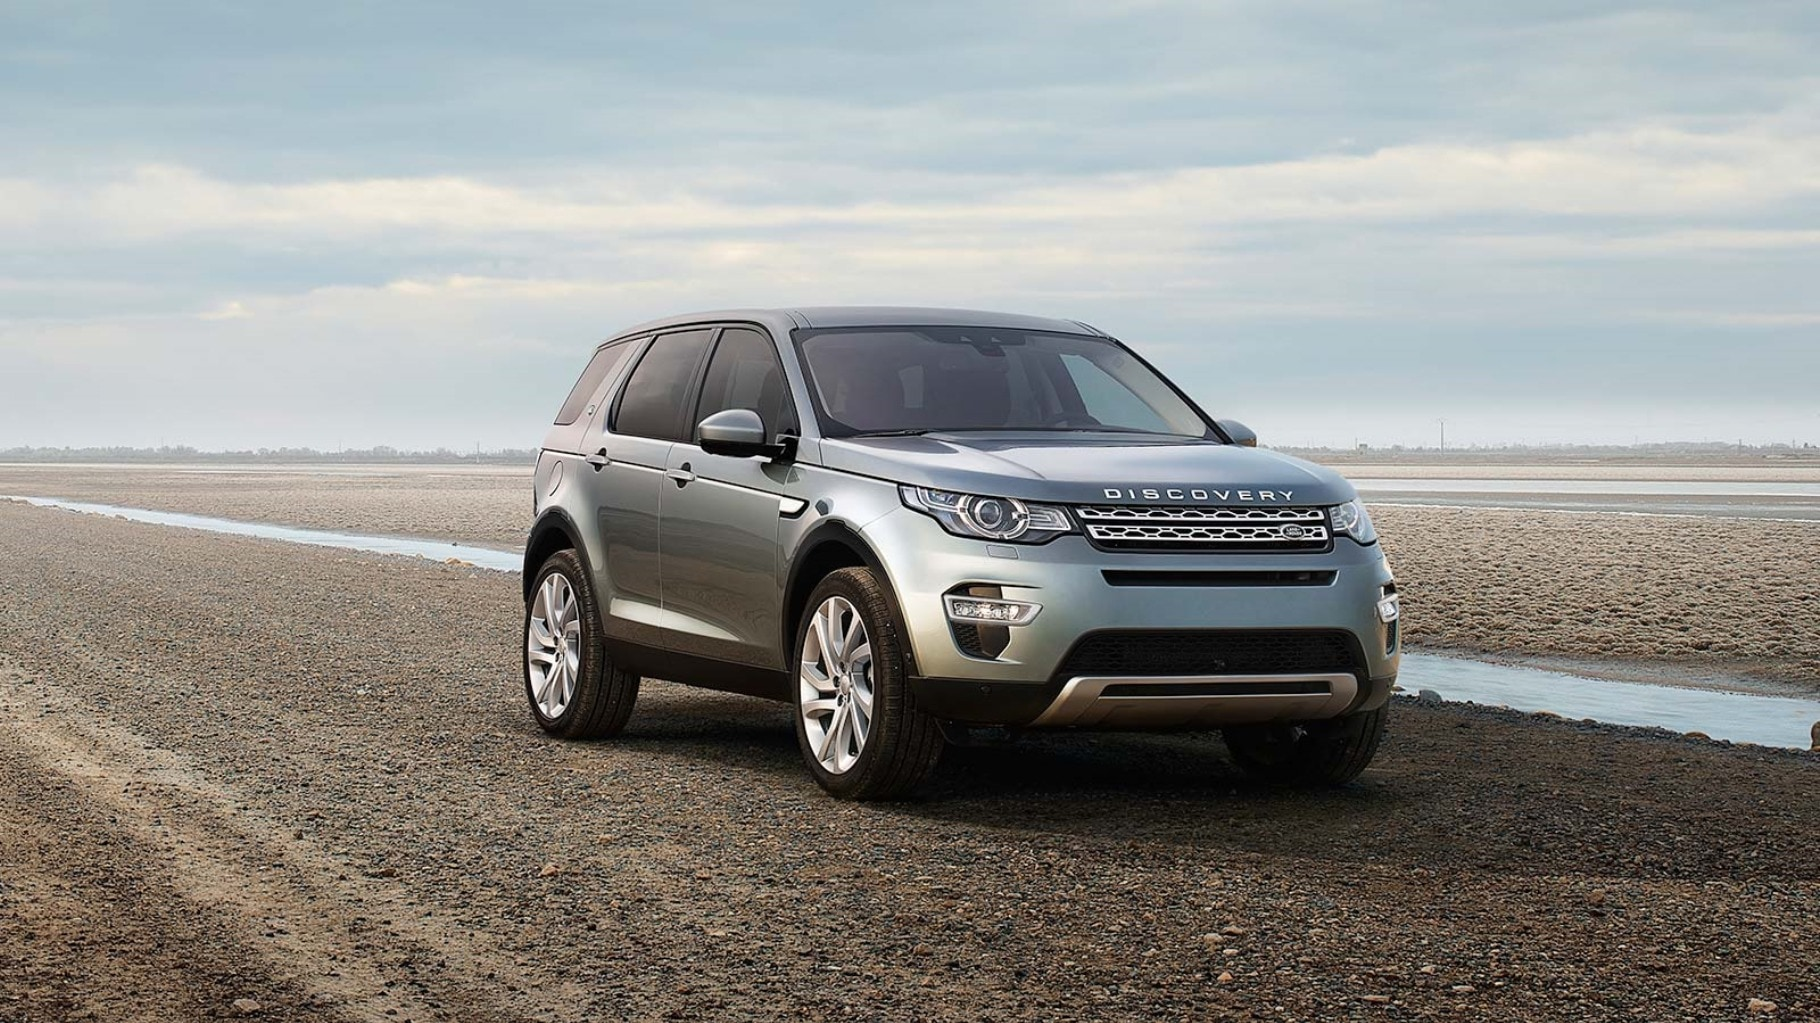 hight resolution of land rover discovery exhaust